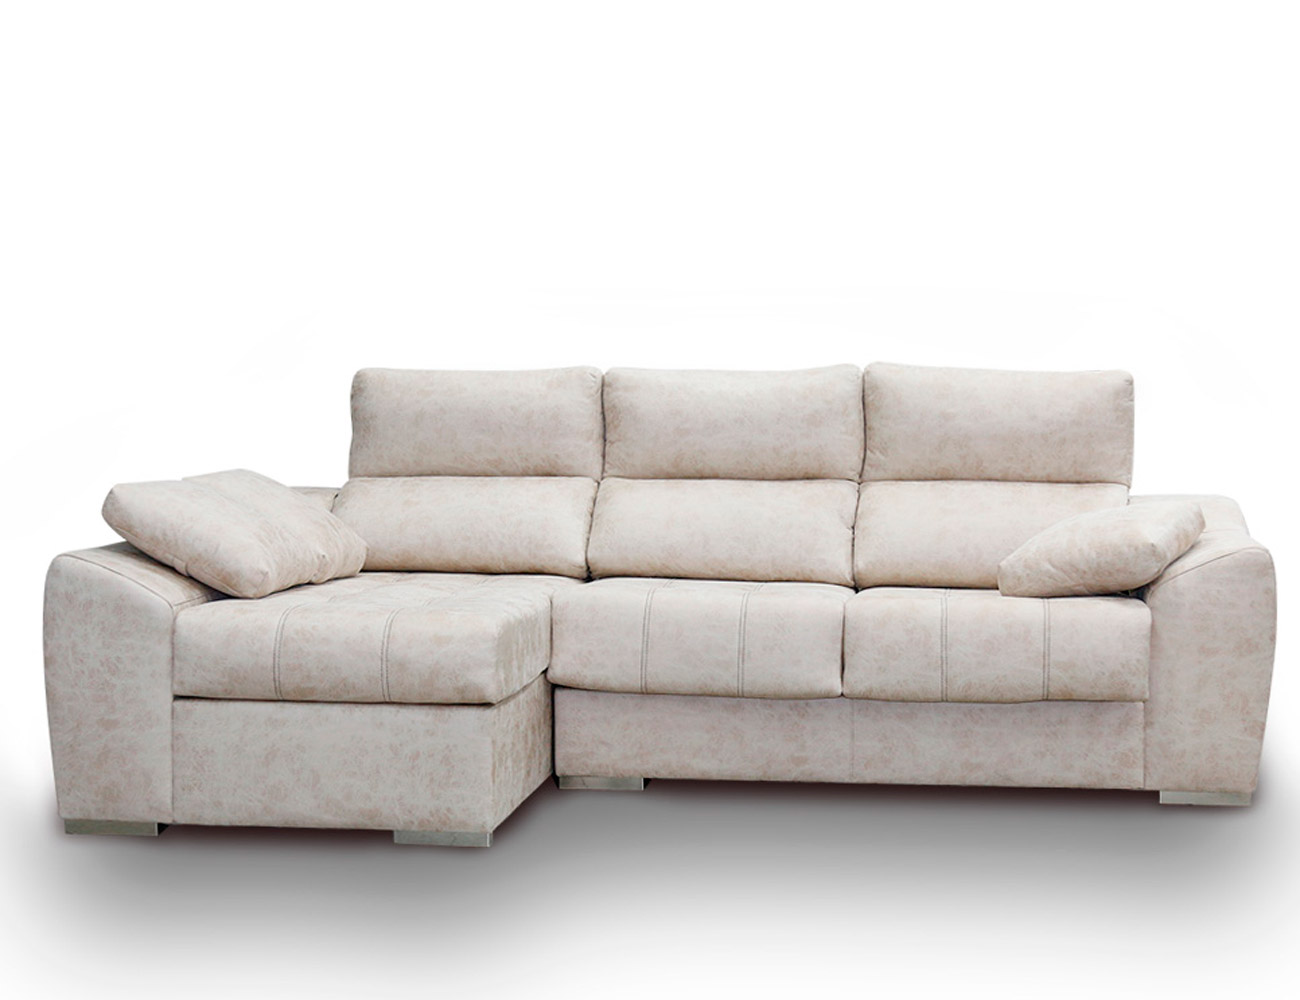 Sofa chaiselongue anti manchas beig blanco11